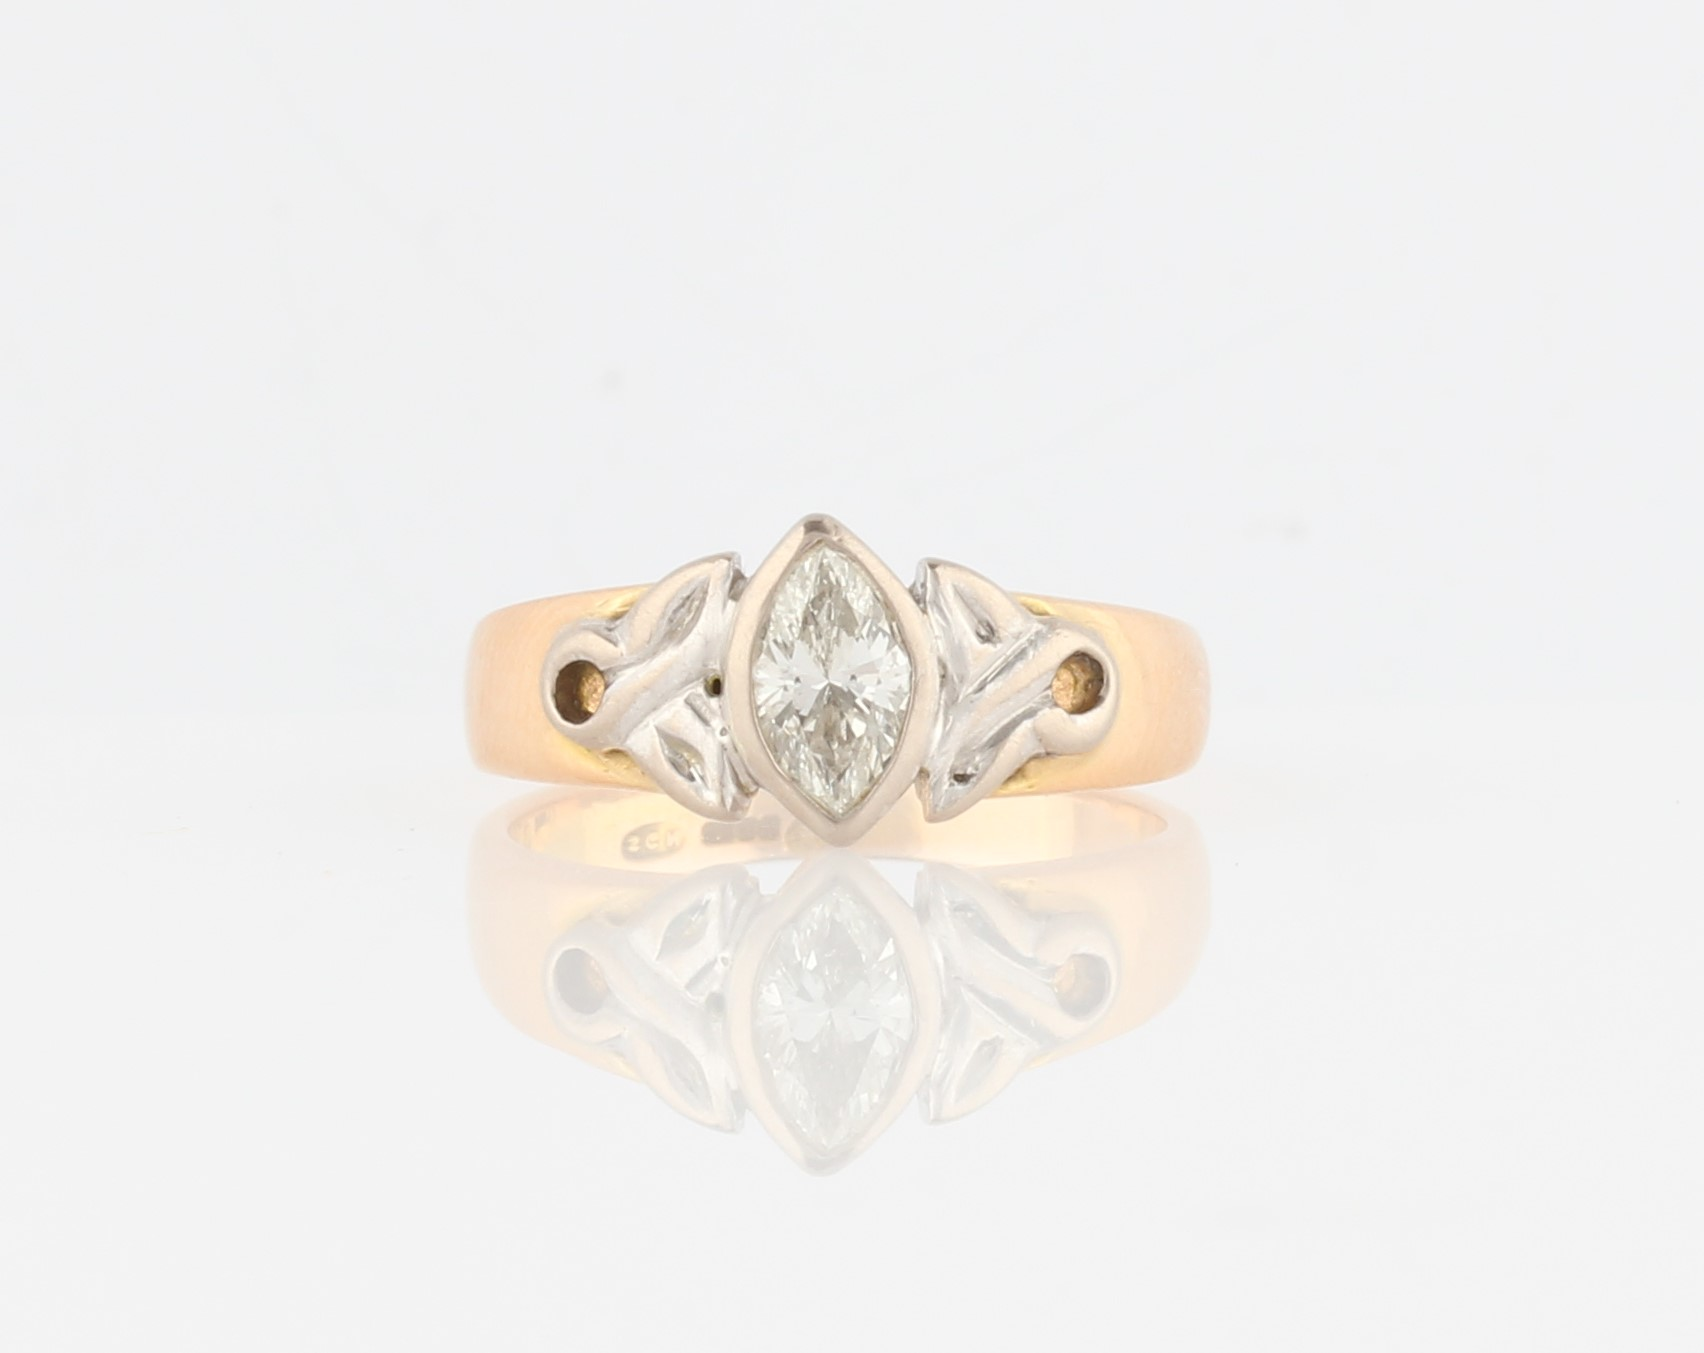 Lot 39 - A diamond solitaire ring, bezel set with a marquise cut diamond, measuring approx. 0.50ct, with